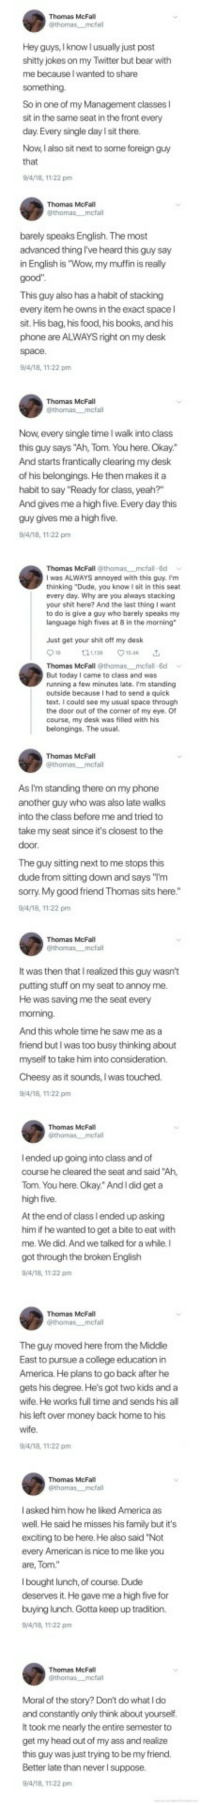 "America, Ass, and Books: Hey guys, Iknow l usually just post  shitty jokes on my Twitter but bear with  me because I wanted to share  So in one of my Management classes l  sit in the same seat in the front every  day.Every single day l sit there.  Now, I also sit next to some foreign guy  Thomas McFall  barely speaks English. The most  advanced thing I've heard this guy say  in English is ""Wow, my muffin is really  This guy also has a habit of stacking  every item he owns in the exact space l  sit. His bag, his food, his books, and his  phone are ALWAYS right on my desk  9/4/18, 1122 pm  Thomas McFall  Now, every single time I walk into class  this guy says ""Ah, Tom. You here. Okay.""  And starts frantically clearing my desk  of his belongings. He then makes it a  habit to say ""Ready for class, yeah?""  And gives me a high five. Every day this  guy gives me a high five.  Thomas McFall @thomas mcfal 8d  I was ALWAYS annoyed with this guy. I'm  thinking ""Dude, you know I sit in this seat  every day. Why are you always stacking  your shit here? And the last thing I want  to do is give a guy who barely speaks my  language high fives at 8 in the morning  Just get your shit oft my desk  Thomas McFall @thomas mcfal 8d  But today I came to class and was  running a few minutes late. Im standing  outside because I had to send a quick  text. I could see my usual space through  the door out of the comer of my eye. O  course, my desk was filled with his  belongings. The usual.  Thomas McFall  As I'm standing there on my phone  another guy who was also late walks  into the class before me and tried to  take my seat since it's closest to the  The guy sitting next to me stops this  dude from sitting don and says ""Tm  sorry. My good friend Thomas sits here.""  9/4/18, 11:22 pm  It was then that I realized this guy wasn't  putting stuff on my seat to annoy me  He was saving me the seat every  And this whole time he saw me as a  friend butl was too busy thinking about  myself to take him into consideration.  Cheesy as it sounds, Iwas touched.  4/18, 11:22 pm  Thomas McFa  lended up going into class and of  course he cleared the seat and said 'Ah  Tom. You here. Okay"" AndI did get a  high five.  At the end of class l ended up asking  him if he wanted to get a bite to eat with  me. We did. And we talked for a while.I  got through the broken English  Thomas McFall  The guy moved here from the Middle  East to pursue a college education in  America. He plans to go back after he  gets his degree. He's got two kids and a  wife. He works full time and sends his al  his left over money back home to his  9/4/18, 11:22 pm  I asked him how he liked America as  well. He said he misses his family but it's  exciting to be here. He also said Not  every American is nice to me like you  l bought lunch, of course. Dude  deserves it. He gave me a high five for  buying lunch. Gotta keep up tradition.  Thomas McFall  Moral of the story? Don't do what I do  and constantly only think about yourself  It took me nearly the entire semester to  get my head out of my ass and realize  this guy was just trying to be my friend.  Better late than never l suppose.  94/18, 11:22 pm <p>Wholesome twitter</p>"